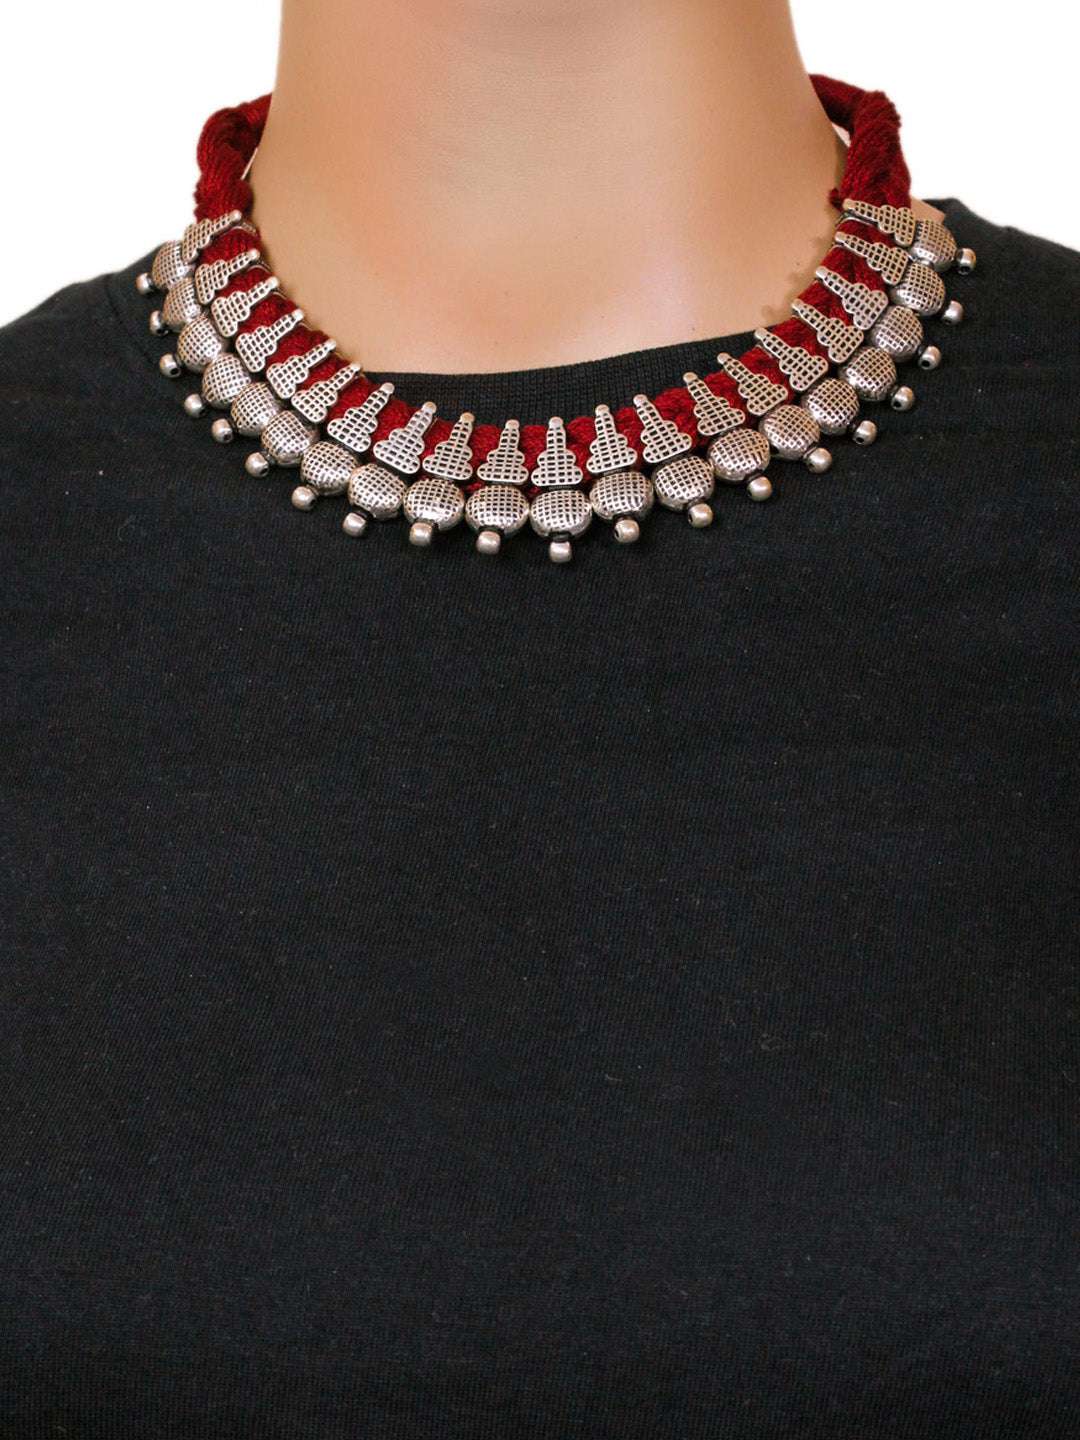 Oxidised German Silver Geometric Design Choker Necklace Set